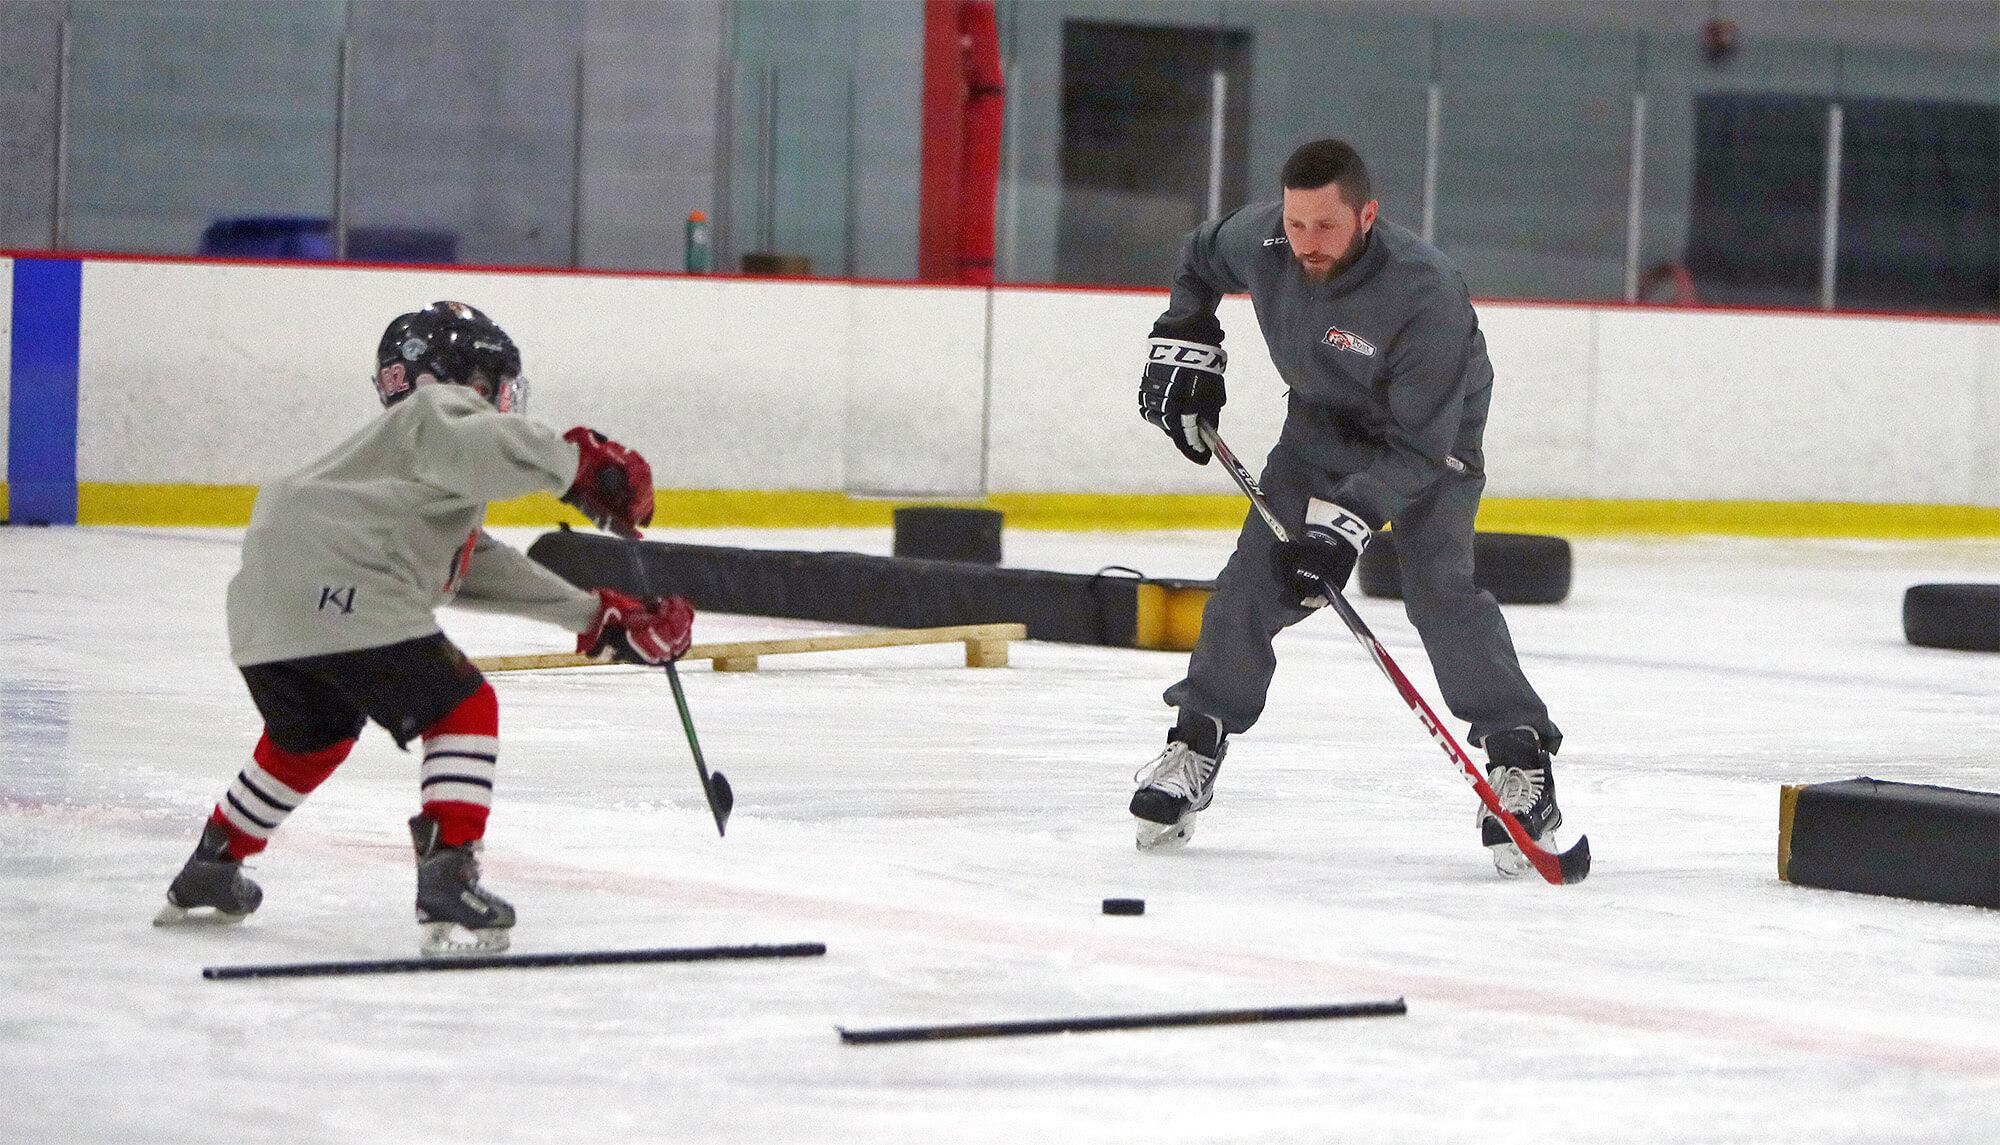 Duncan Rutsch works with Tim Richter of IPH Hockey